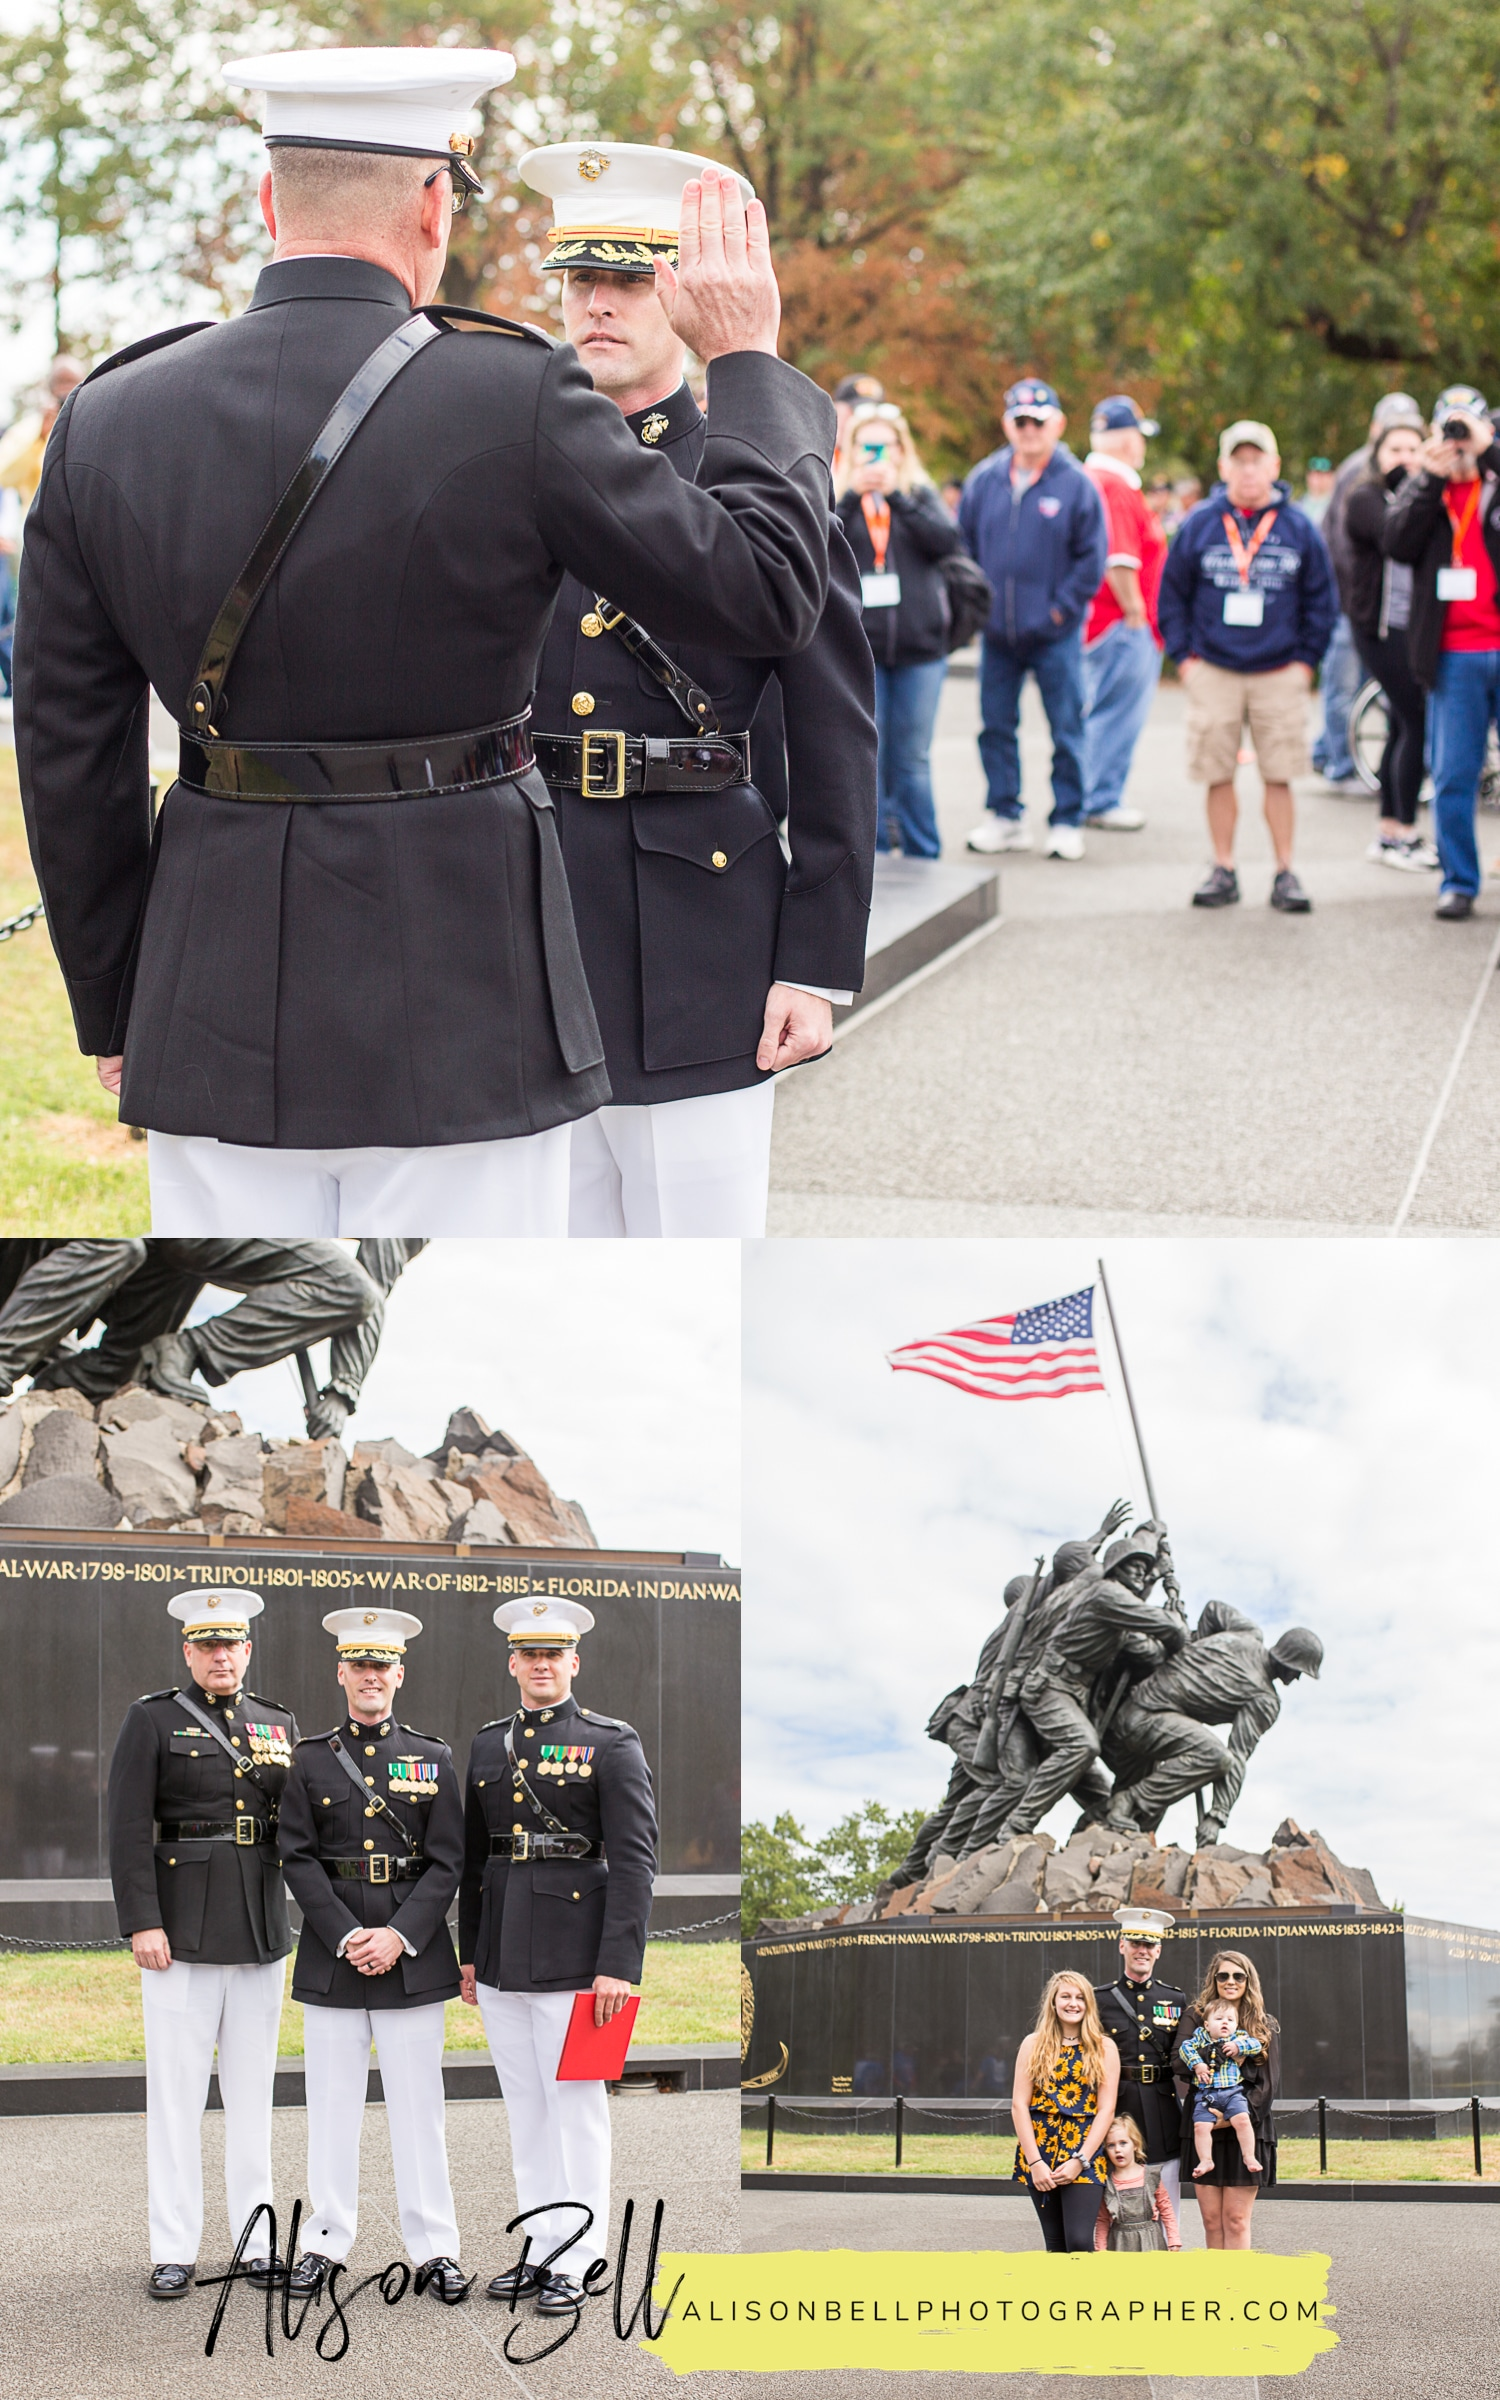 Marine Corps Promotion pinning ceremony at US Marine Corps War Memorial Iwo Jima Washington, DC by Alison Bell, Photographer.